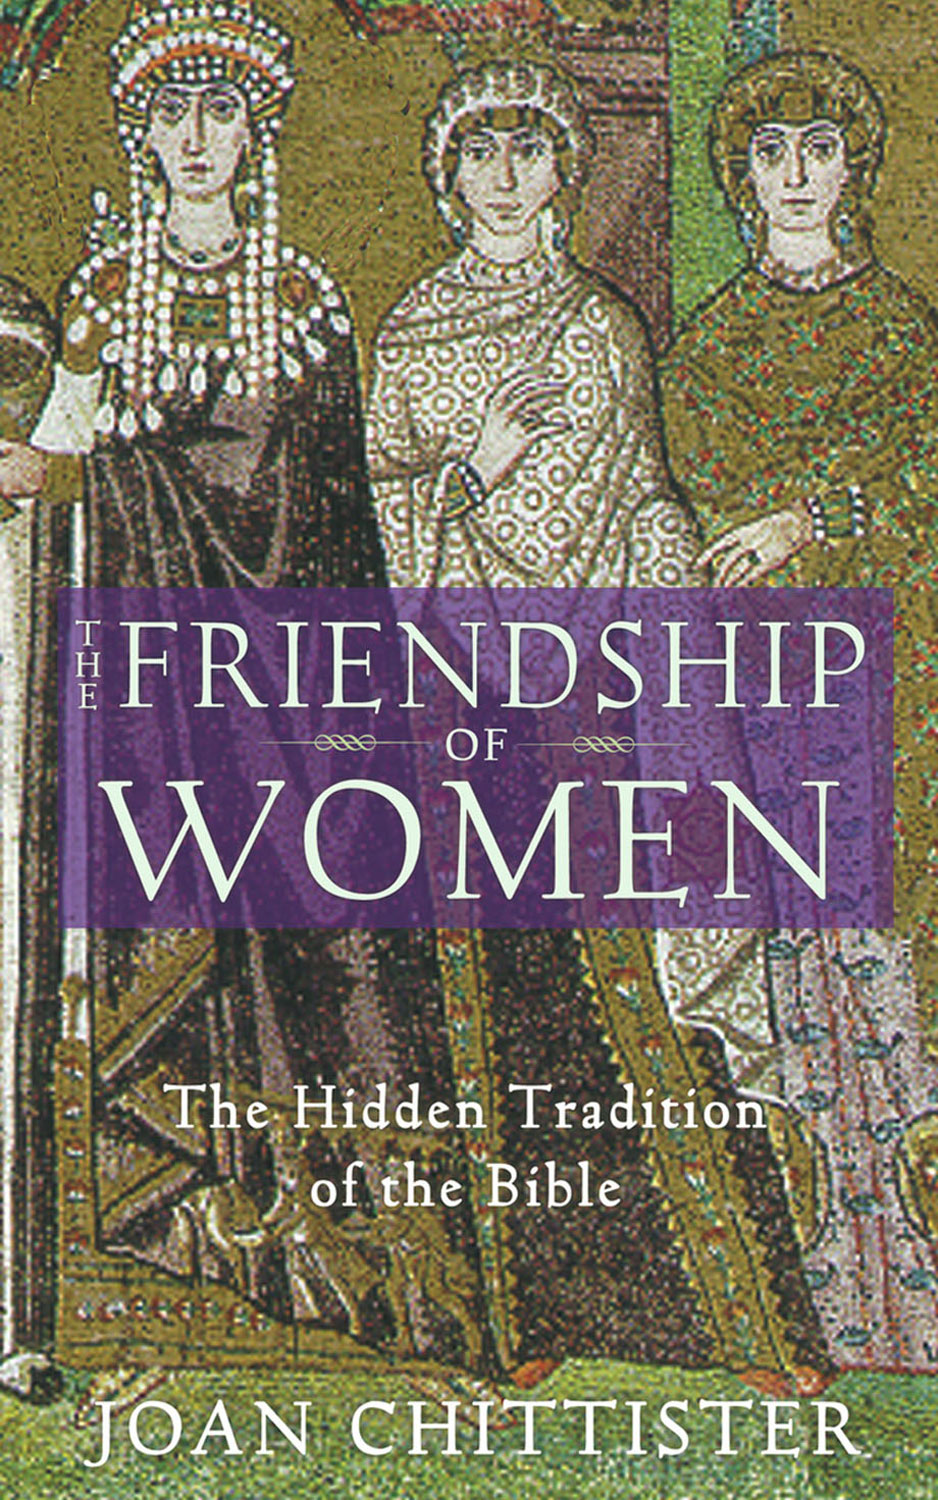 The Friendship of Women: The Hidden Tradition of the Bible By: Joan Chittister